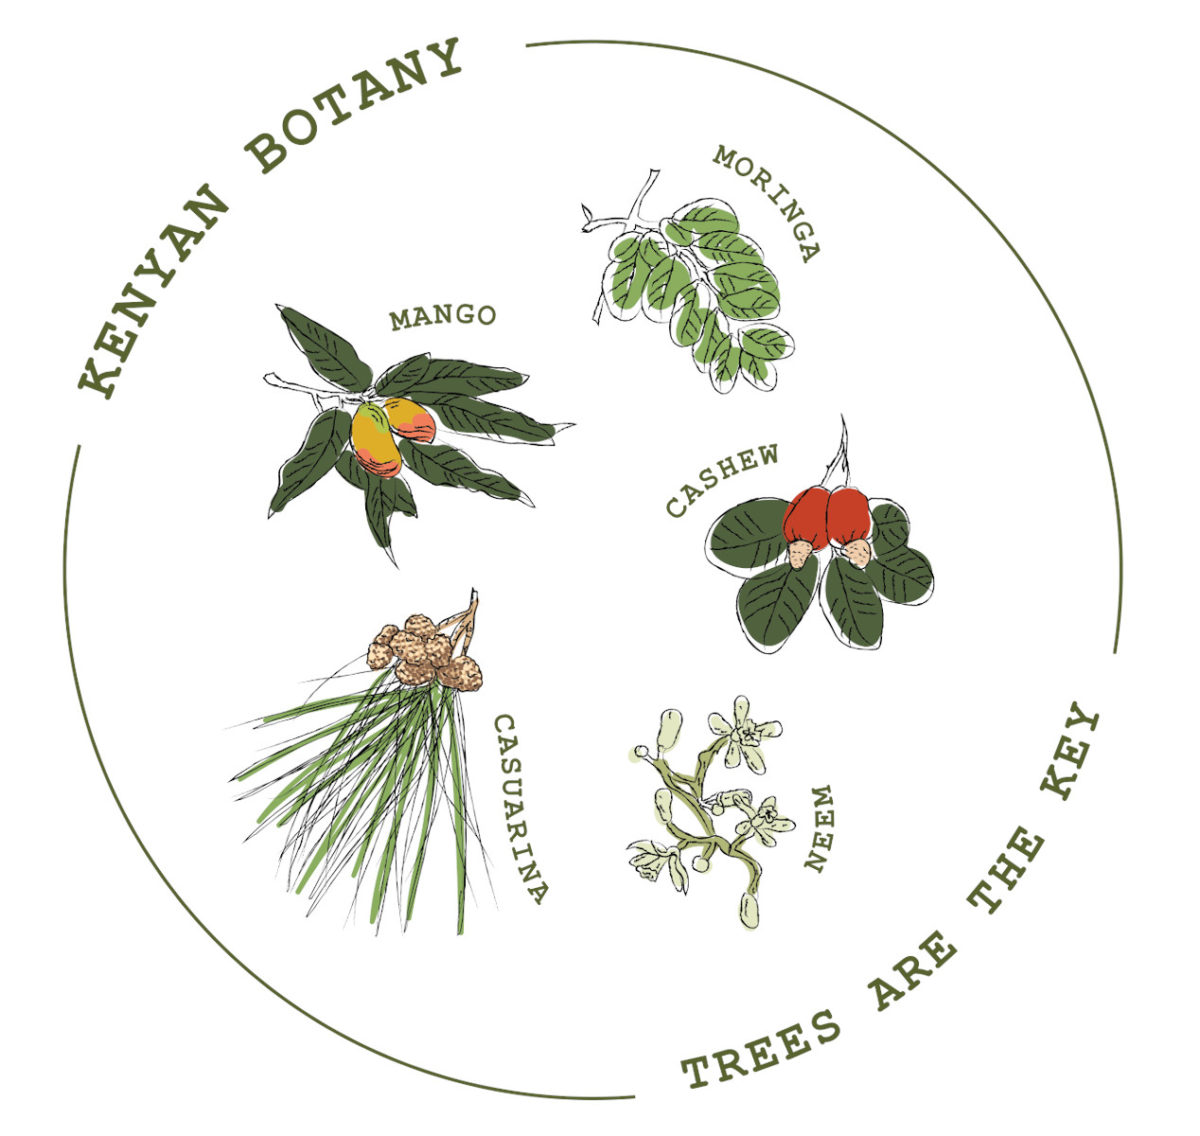 The Kenyan Botany Collection